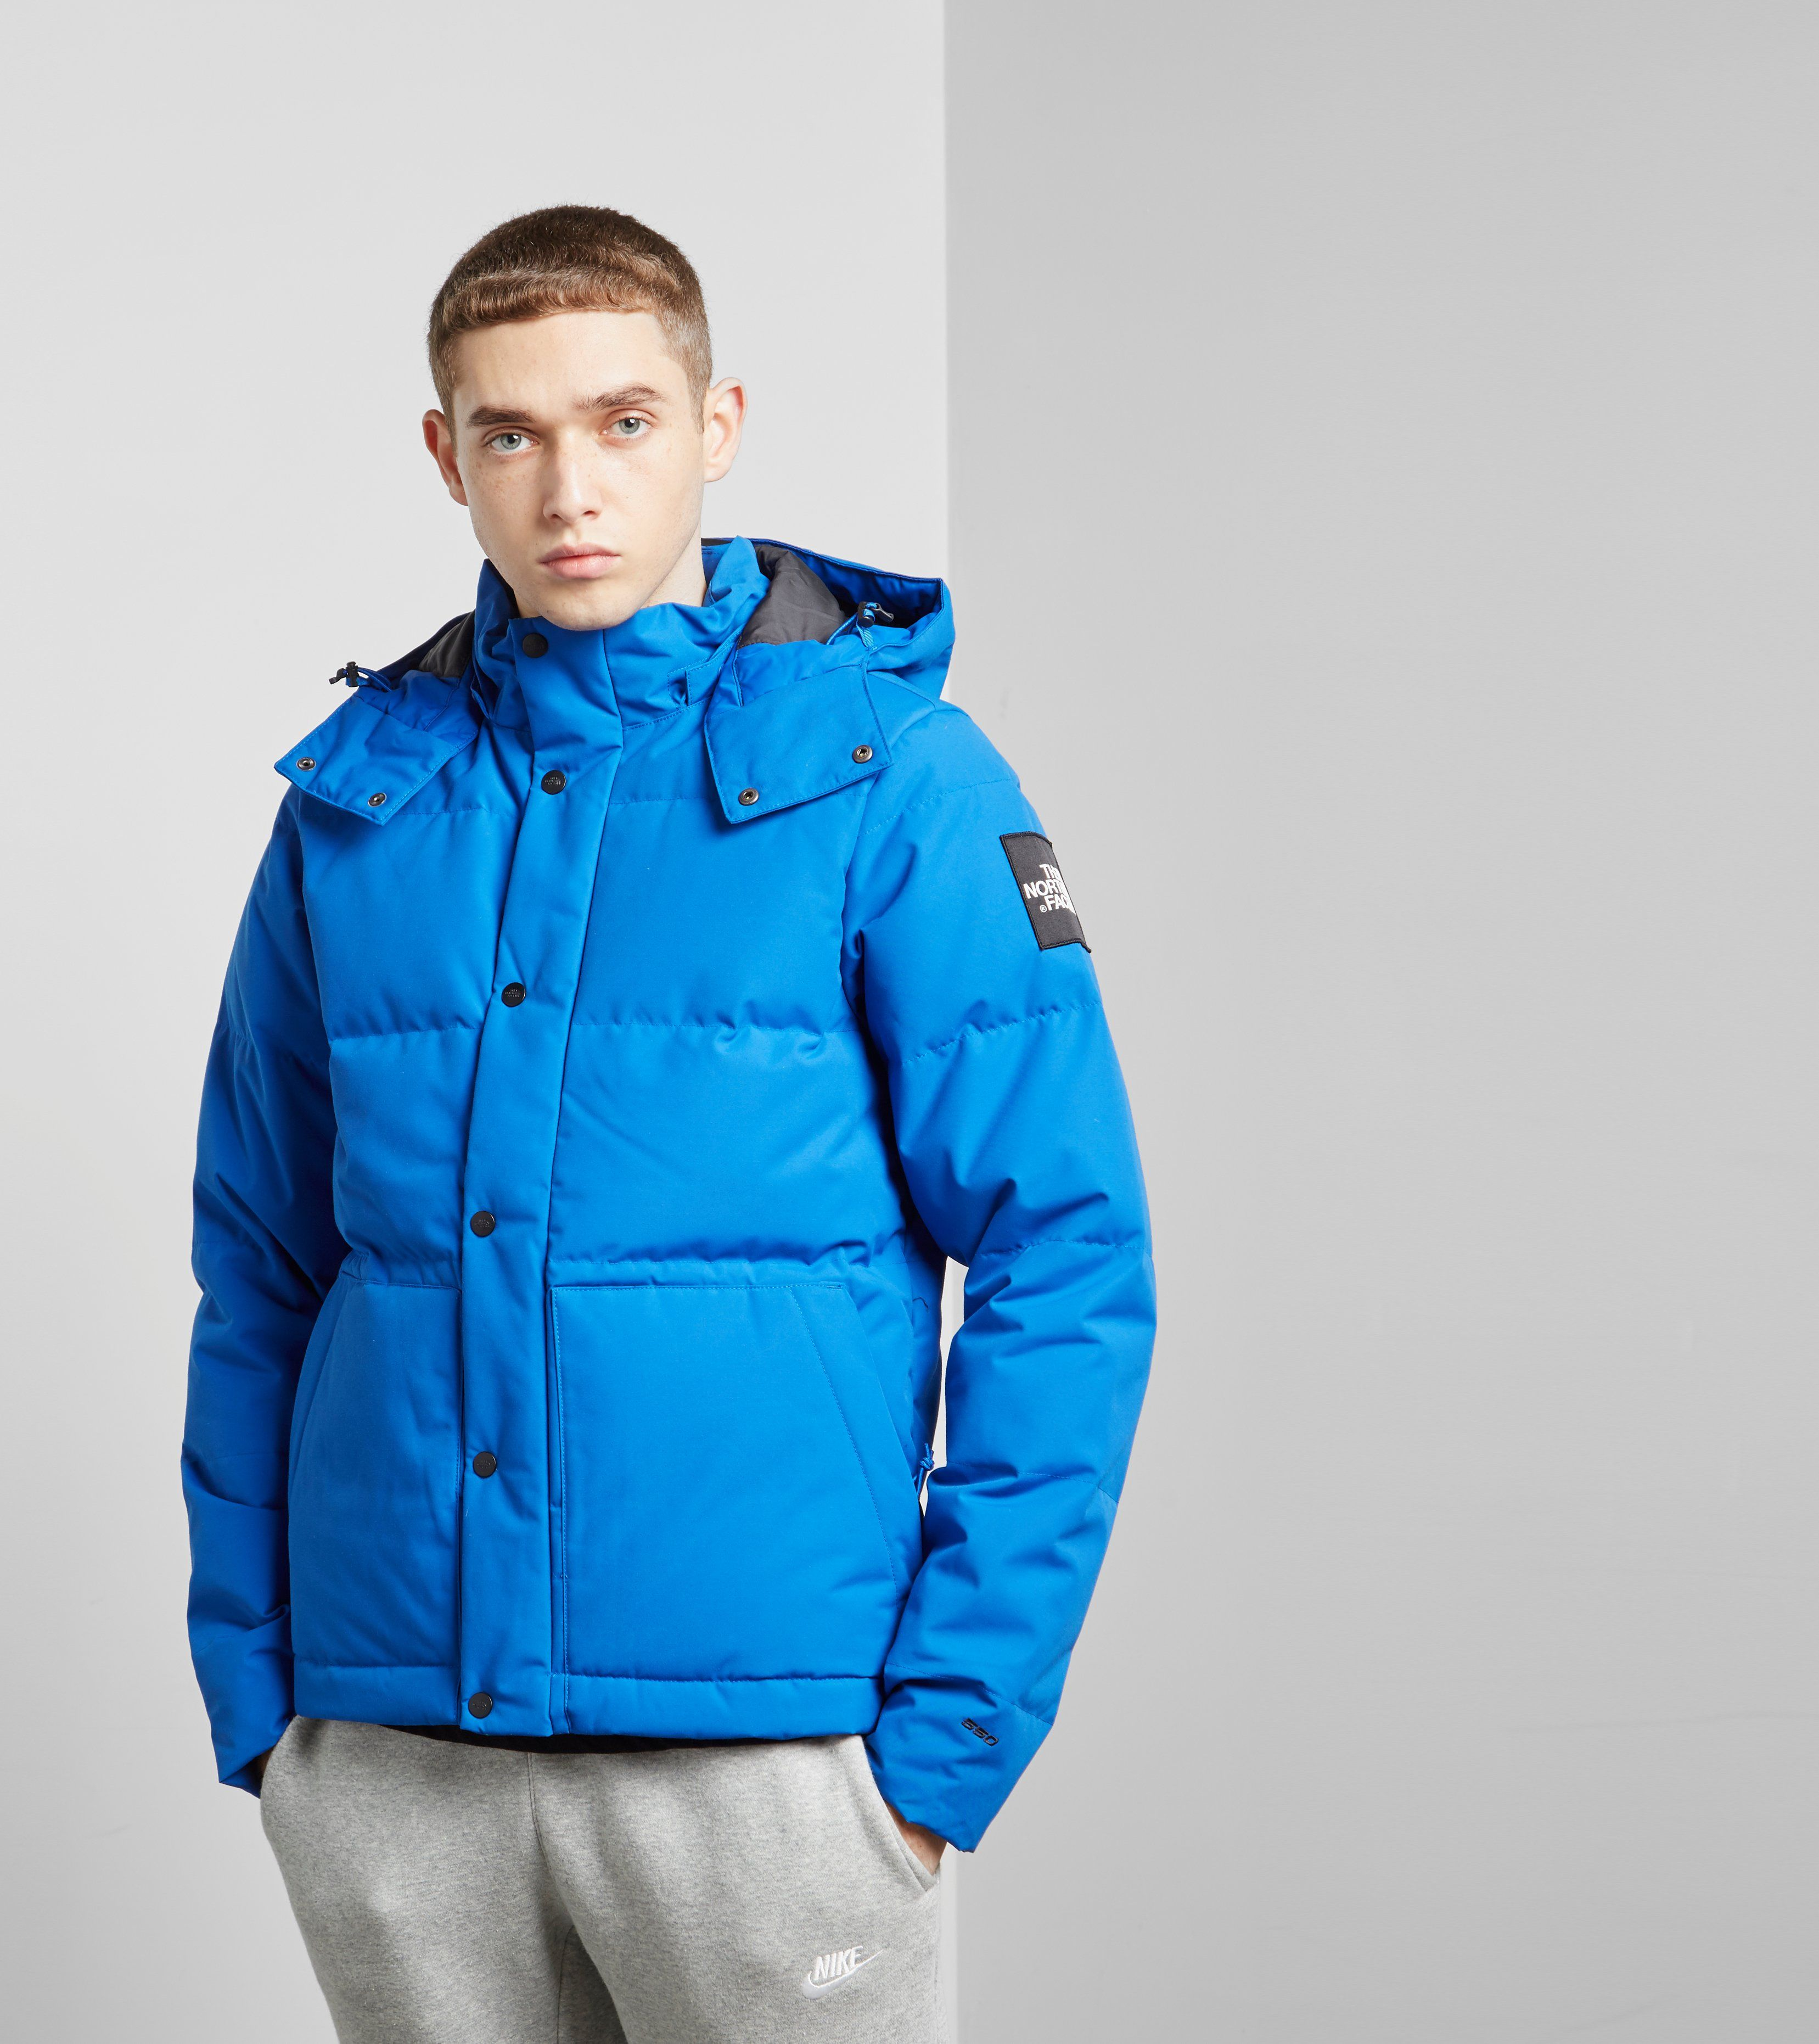 Blue The North Face Jackets and Coats - Mens | Size?